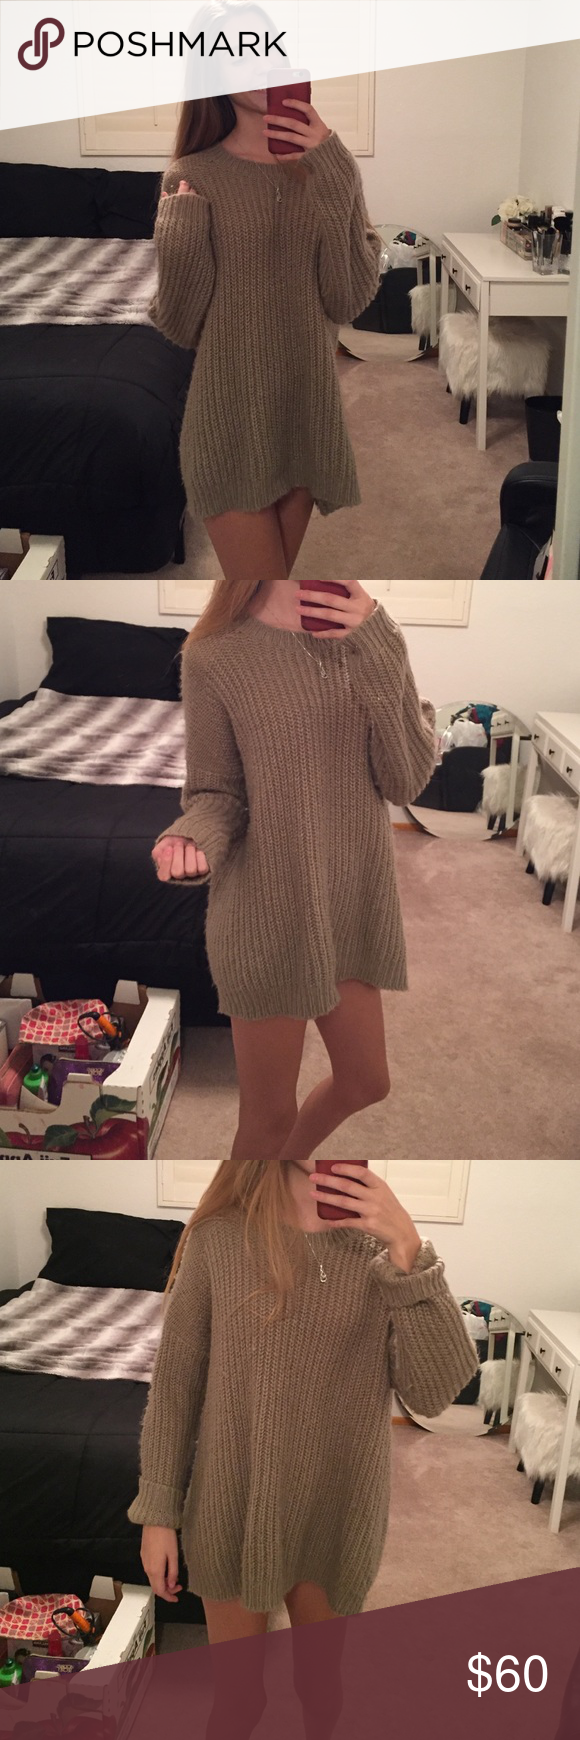 Oversized sweater Brand new oversized sweater. Super vintage and cute. Size M but I'm a XS and it gives it a cute oversized cozy look. No tag it was itchy but bought for $120 in Santa Monica. Will go cheaper on ️️ Brandy Melville Sweaters Crew & Scoop Necks